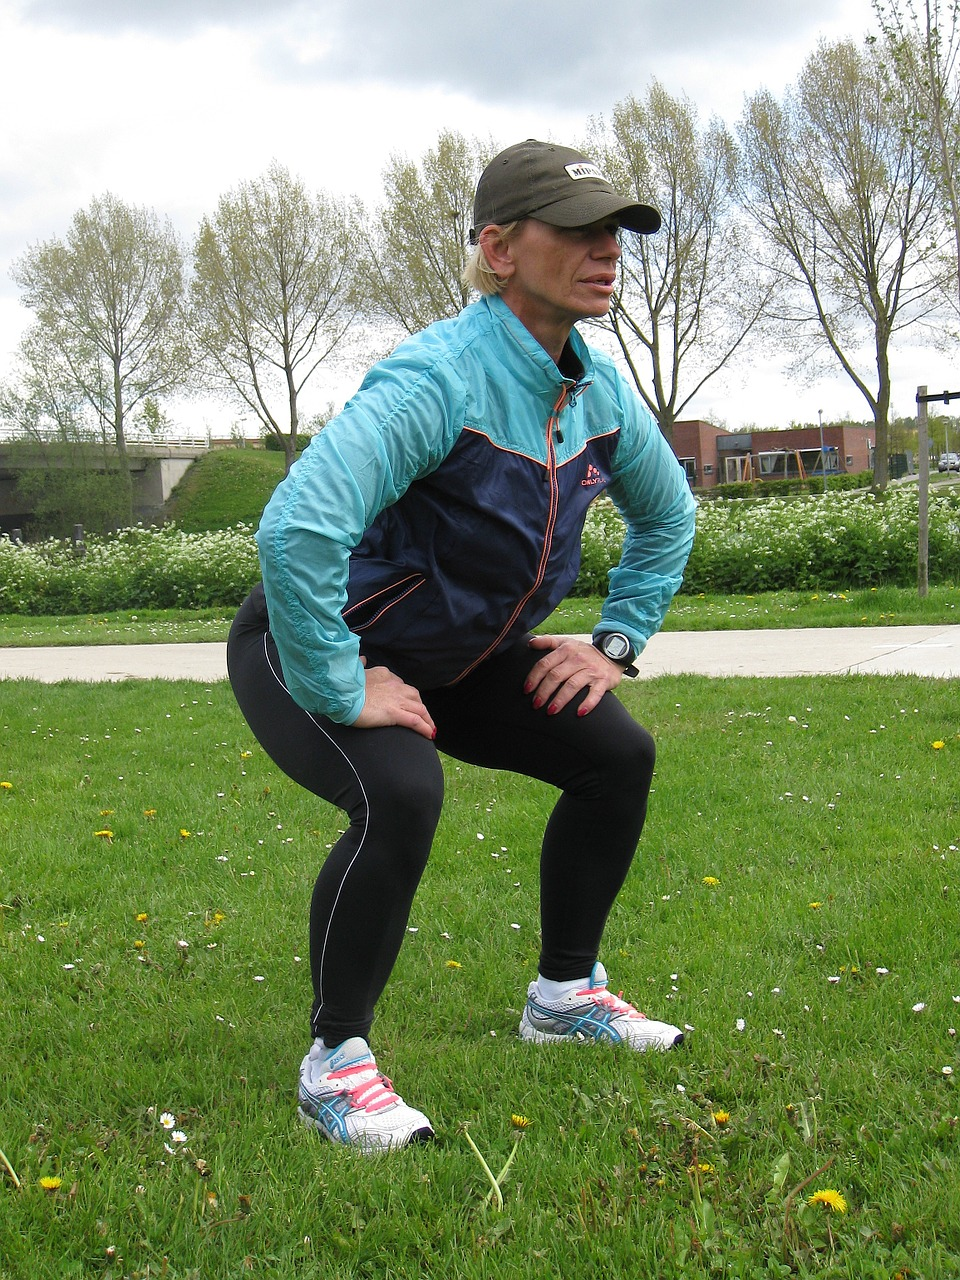 Fitness-Outdoor-Squat-685417.jpg